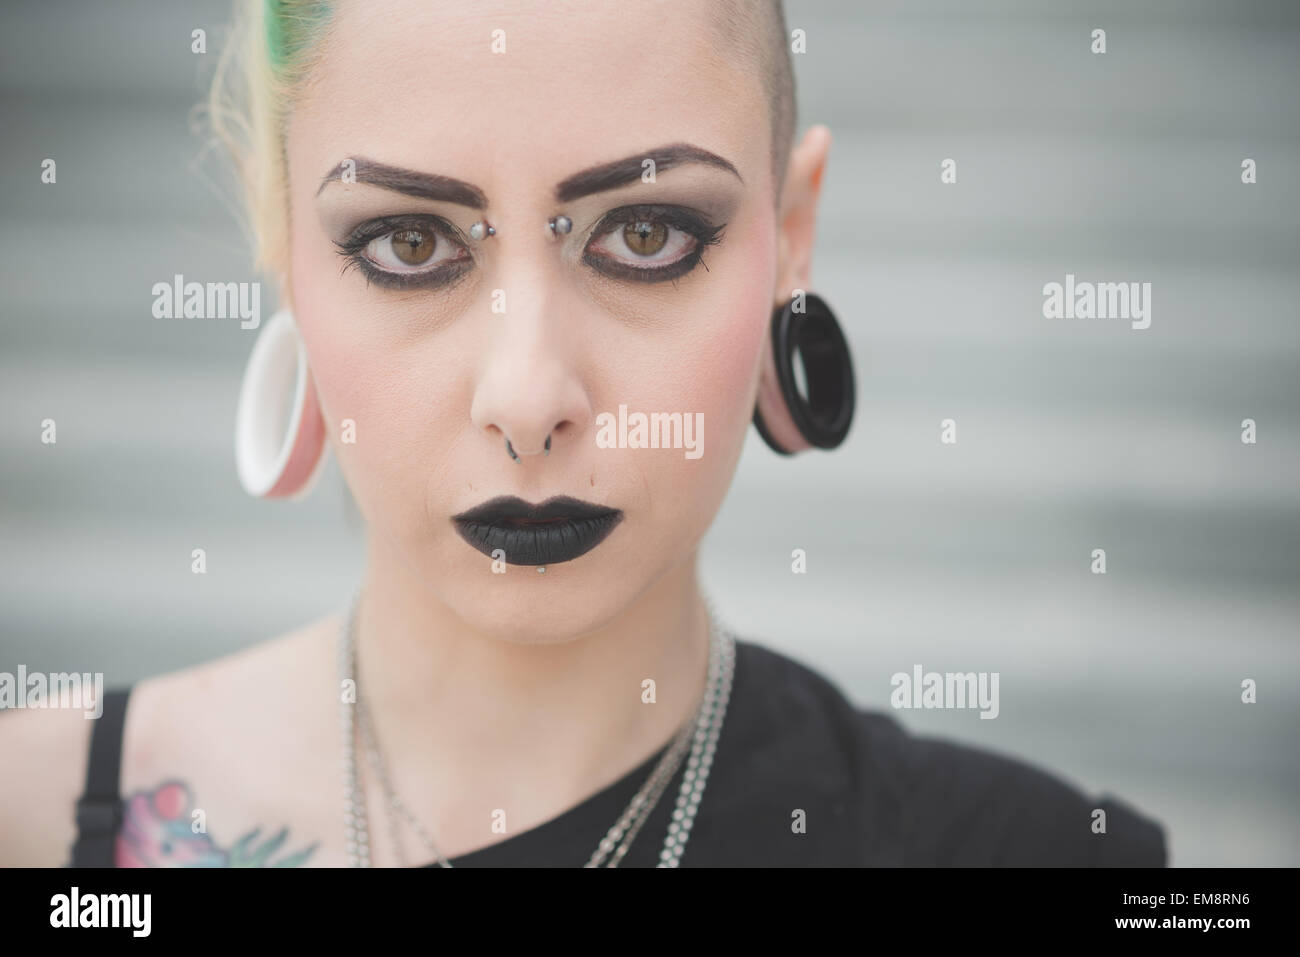 Portrait of young female punk with nose and earlobe piercings - Stock Image